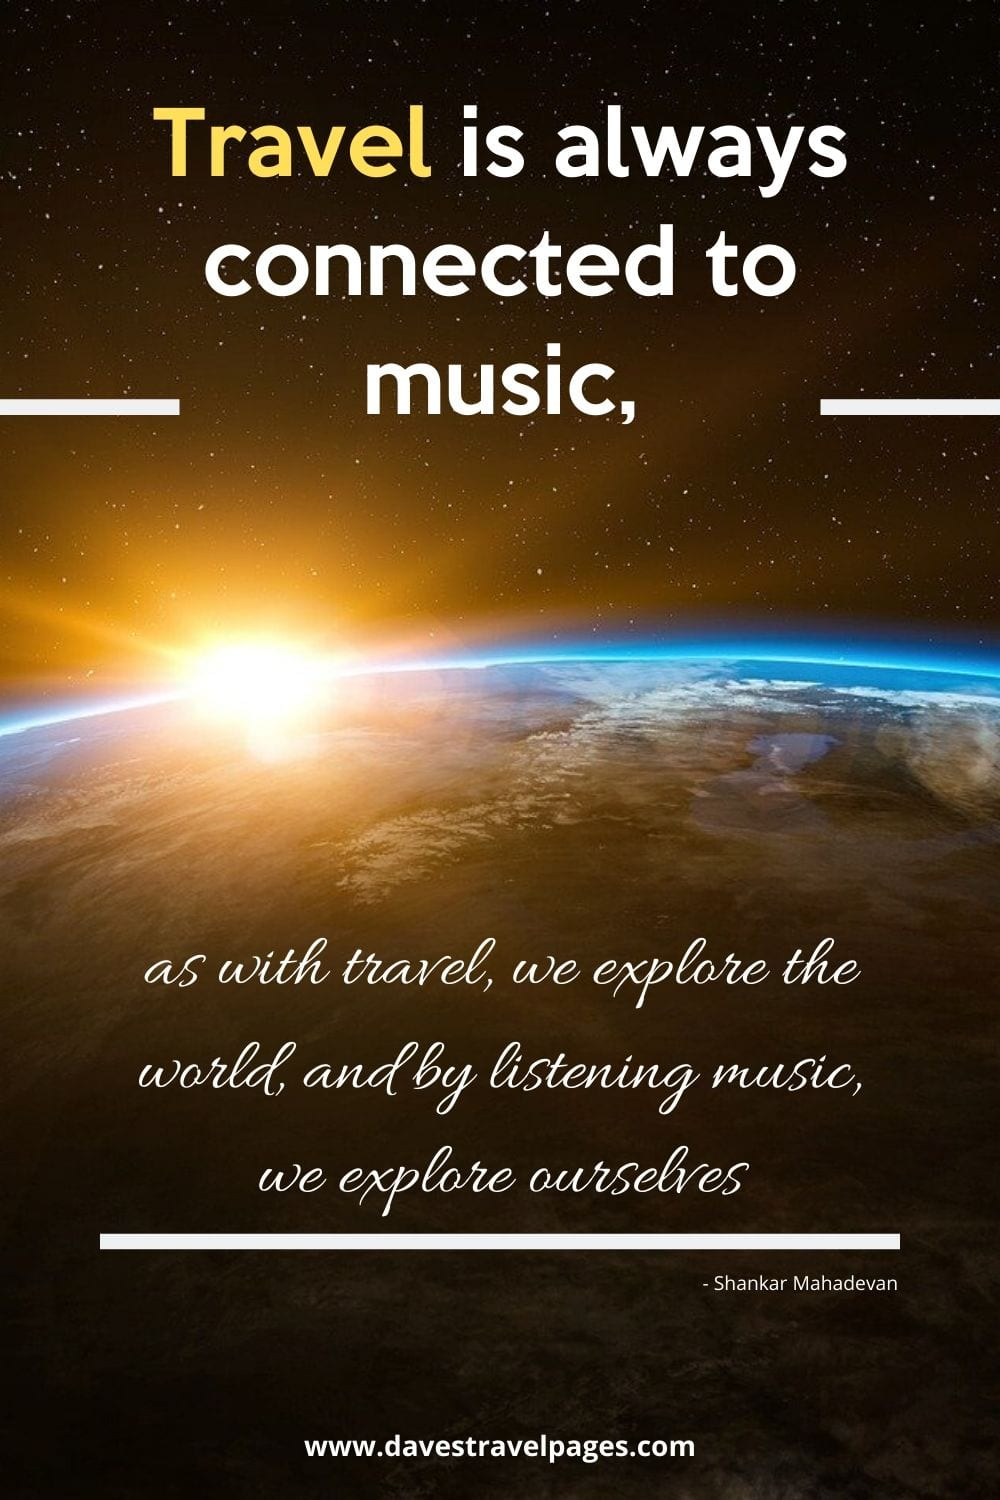 Travel is always connected to music, as with travel, we explore the world, and by listening music, we explore ourselves. Shankar Mahadevan